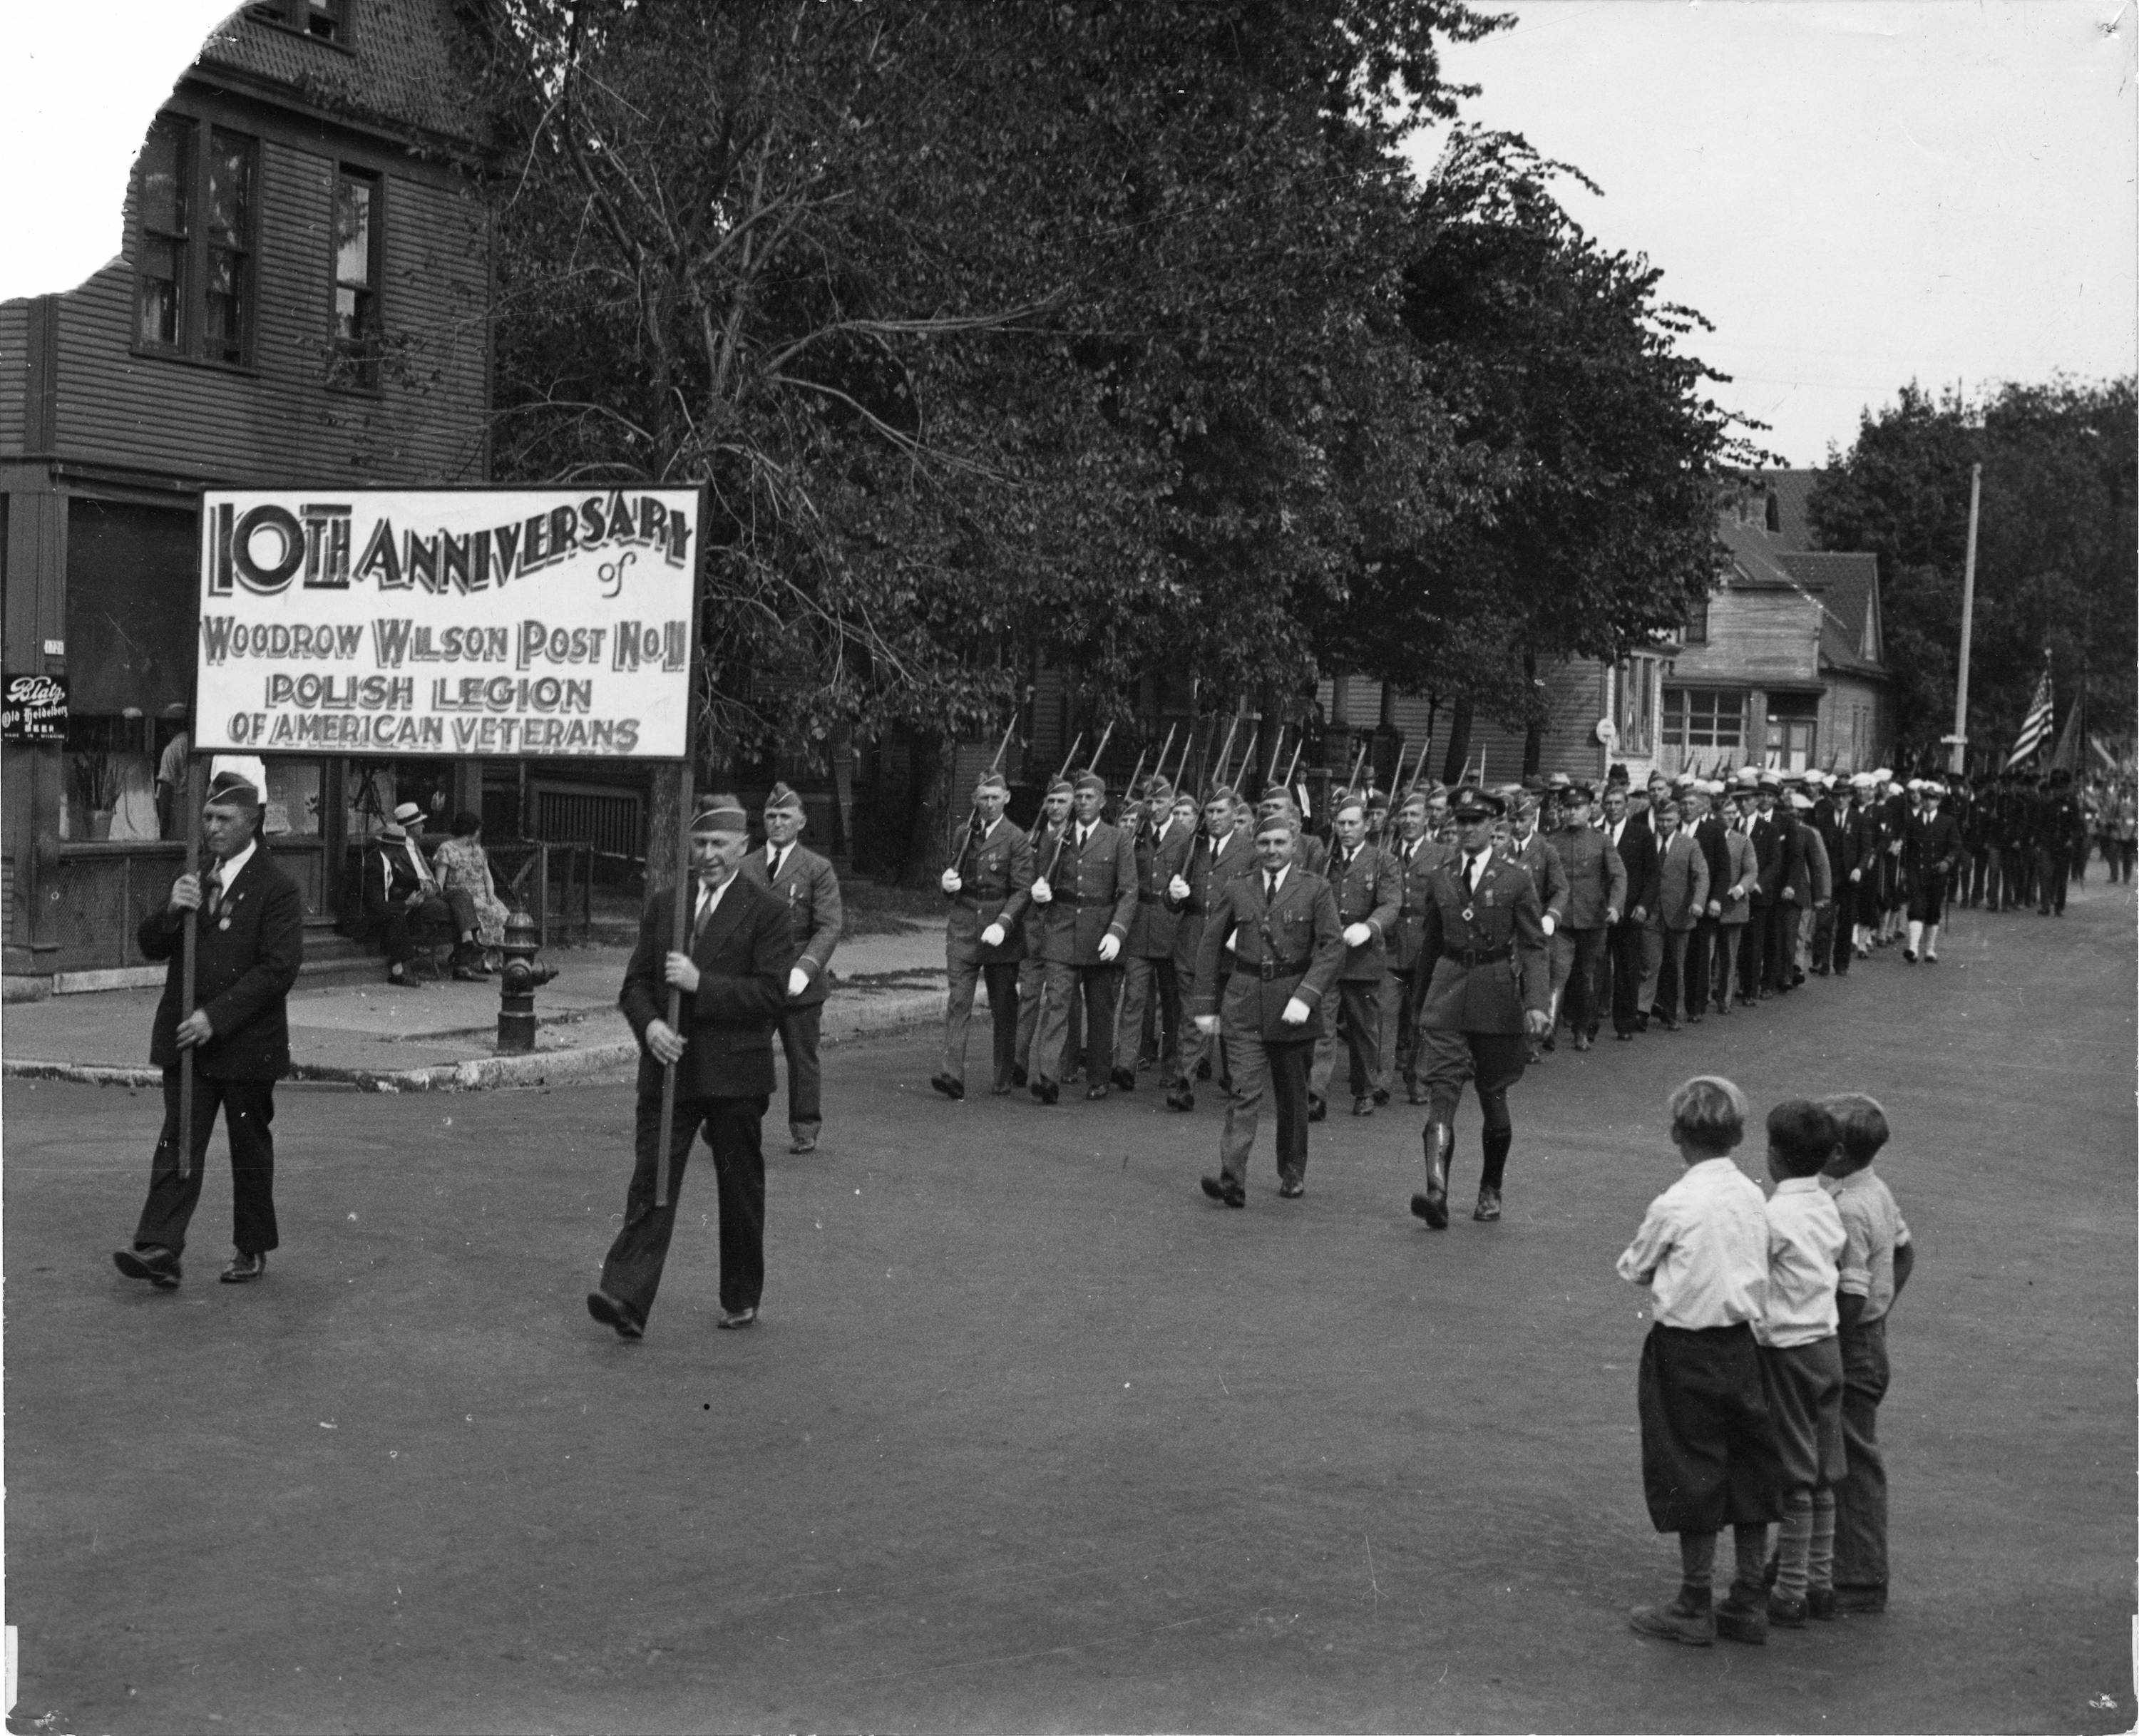 <table class=&quot;lightbox&quot;><tr><td colspan=2 class=&quot;lightbox-title&quot;>Polish Legion Veterans' Parade</td></tr><tr><td colspan=2 class=&quot;lightbox-caption&quot;>Members of the Polish Legion of American Veterans from Woodrow Wilson Post No. 11 lead a parade procession.</td></tr><tr><td colspan=2 class=&quot;lightbox-spacer&quot;></td></tr><tr class=&quot;lightbox-detail&quot;><td class=&quot;cell-title&quot;>Source: </td><td class=&quot;cell-value&quot;>From the Roman B. Kwaniewski Photographs Collection, Archives. University of Wisconsin-Milwaukee Libraries.<br /><a href=&quot;https://collections.lib.uwm.edu/digital/collection/mke-polonia/id/35202/rec/213&quot; target=&quot;_blank&quot;>University of Wisconsin-Milwaukee Libraries</a></td></tr><tr class=&quot;filler-row&quot;><td colspan=2>&nbsp;</td></tr></table>